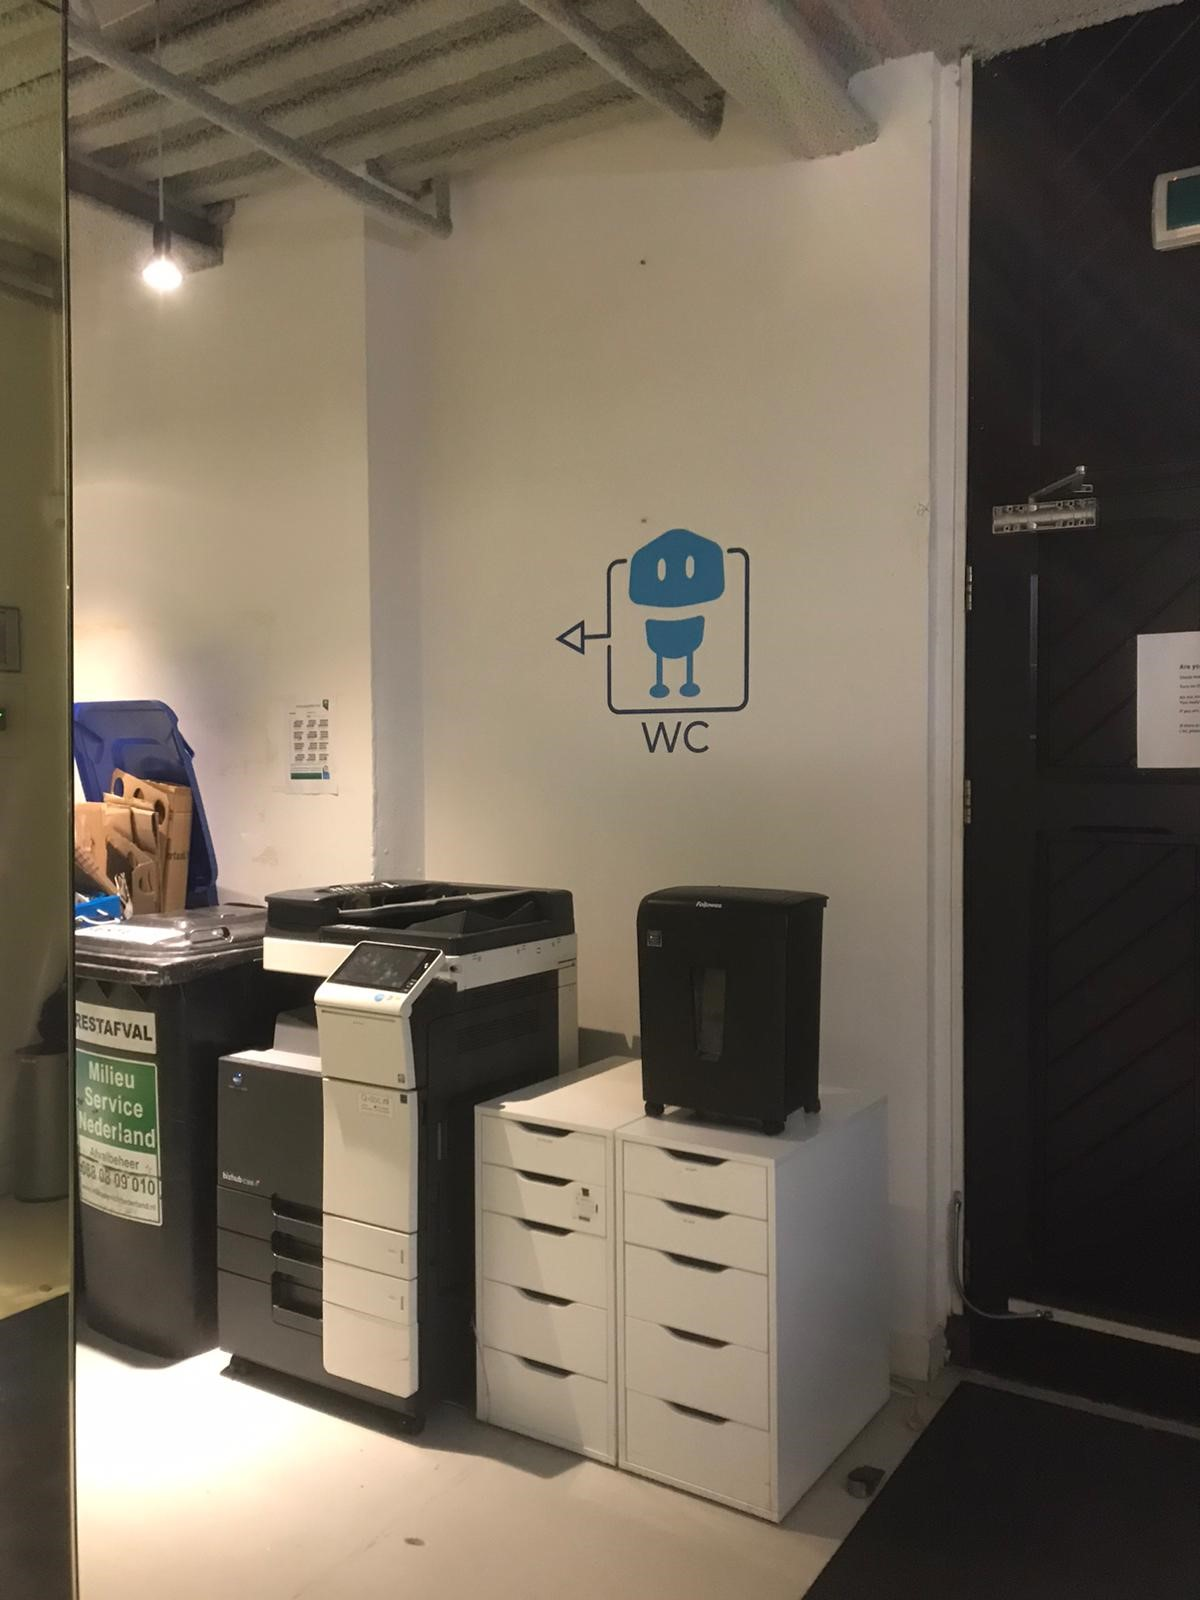 Wall-grip wc signage